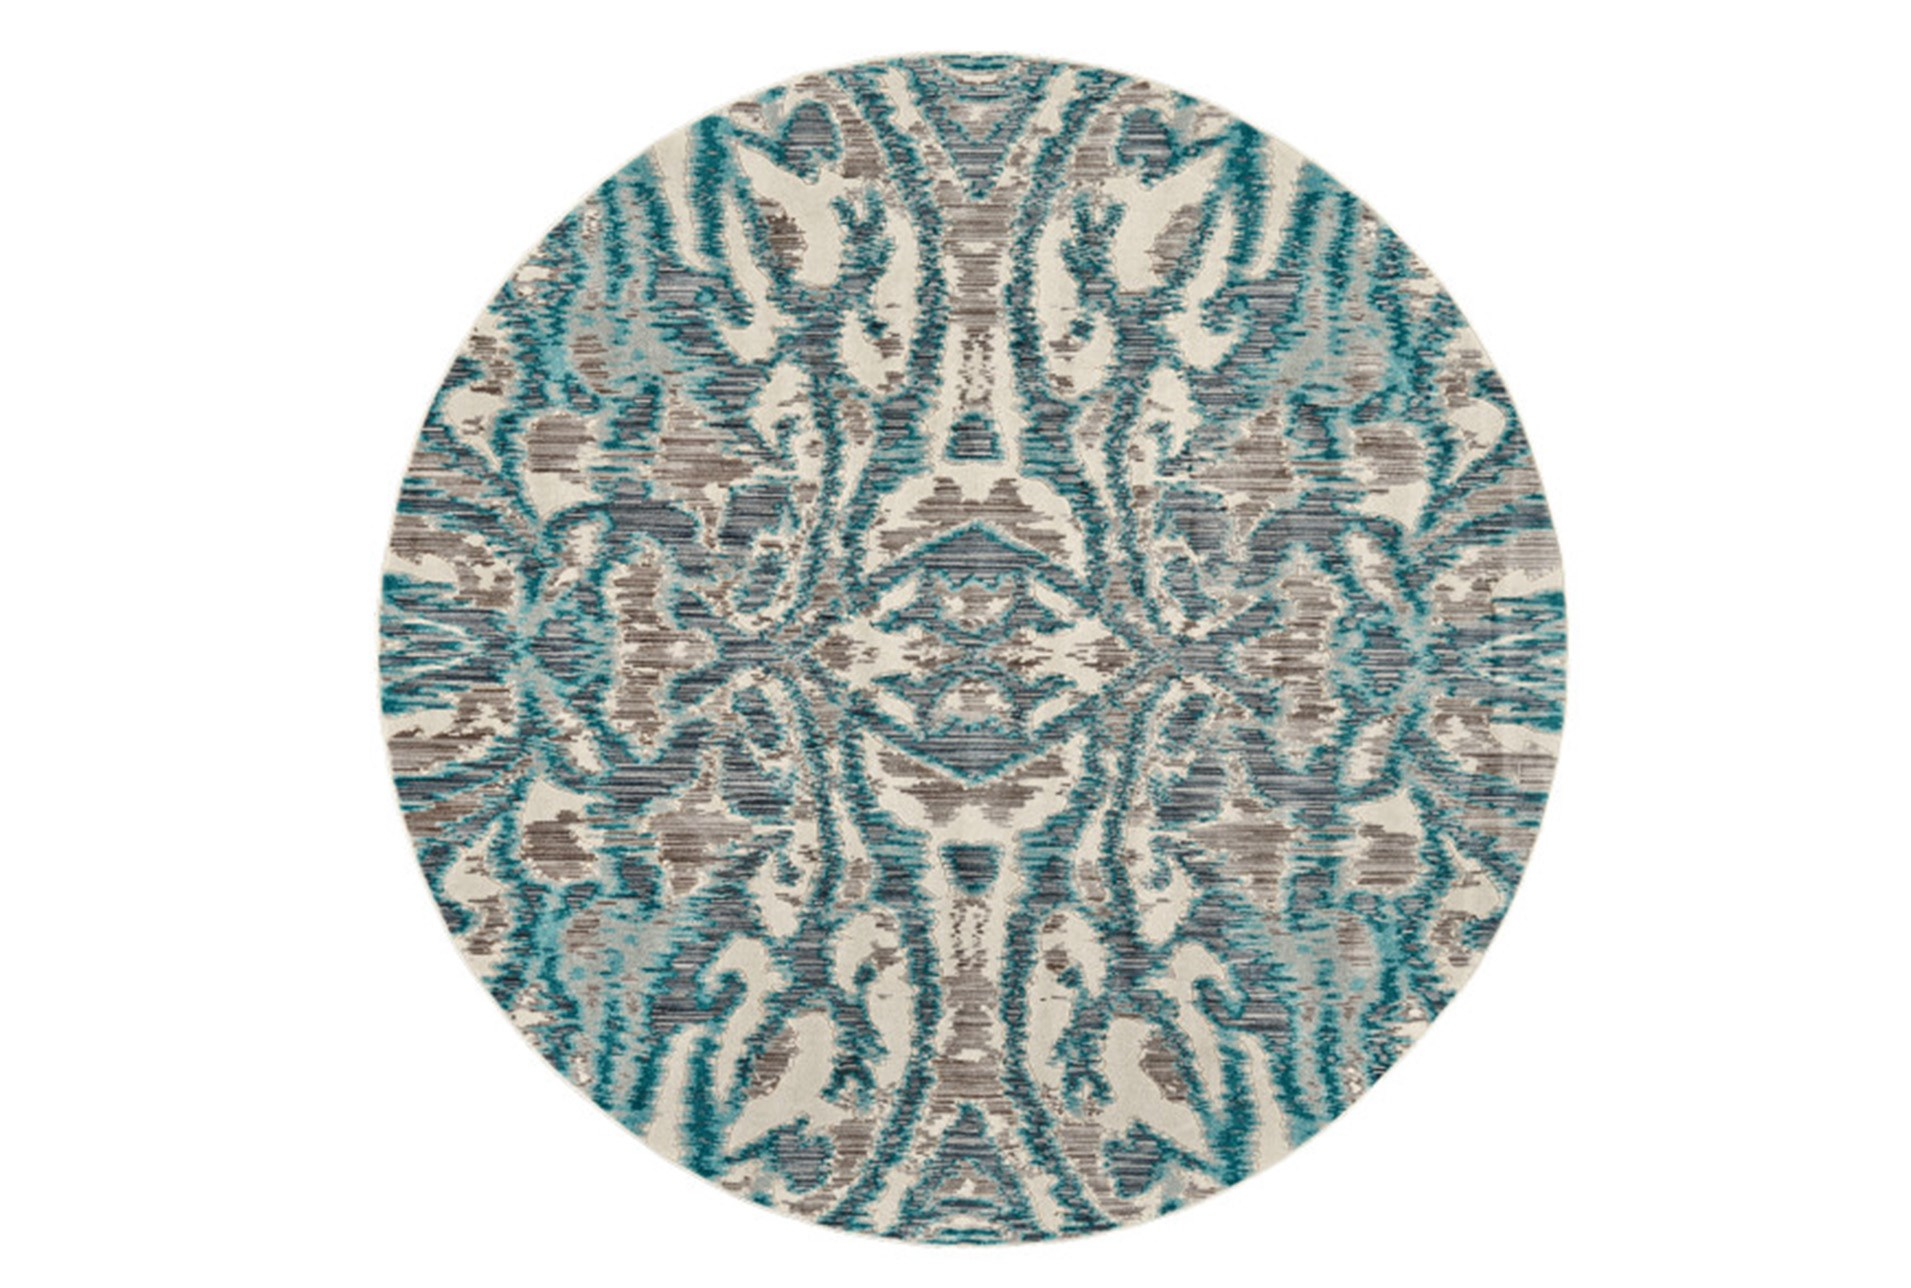 105 Inch Round Rug Turquoise And Grey Kaleidoscope Damask